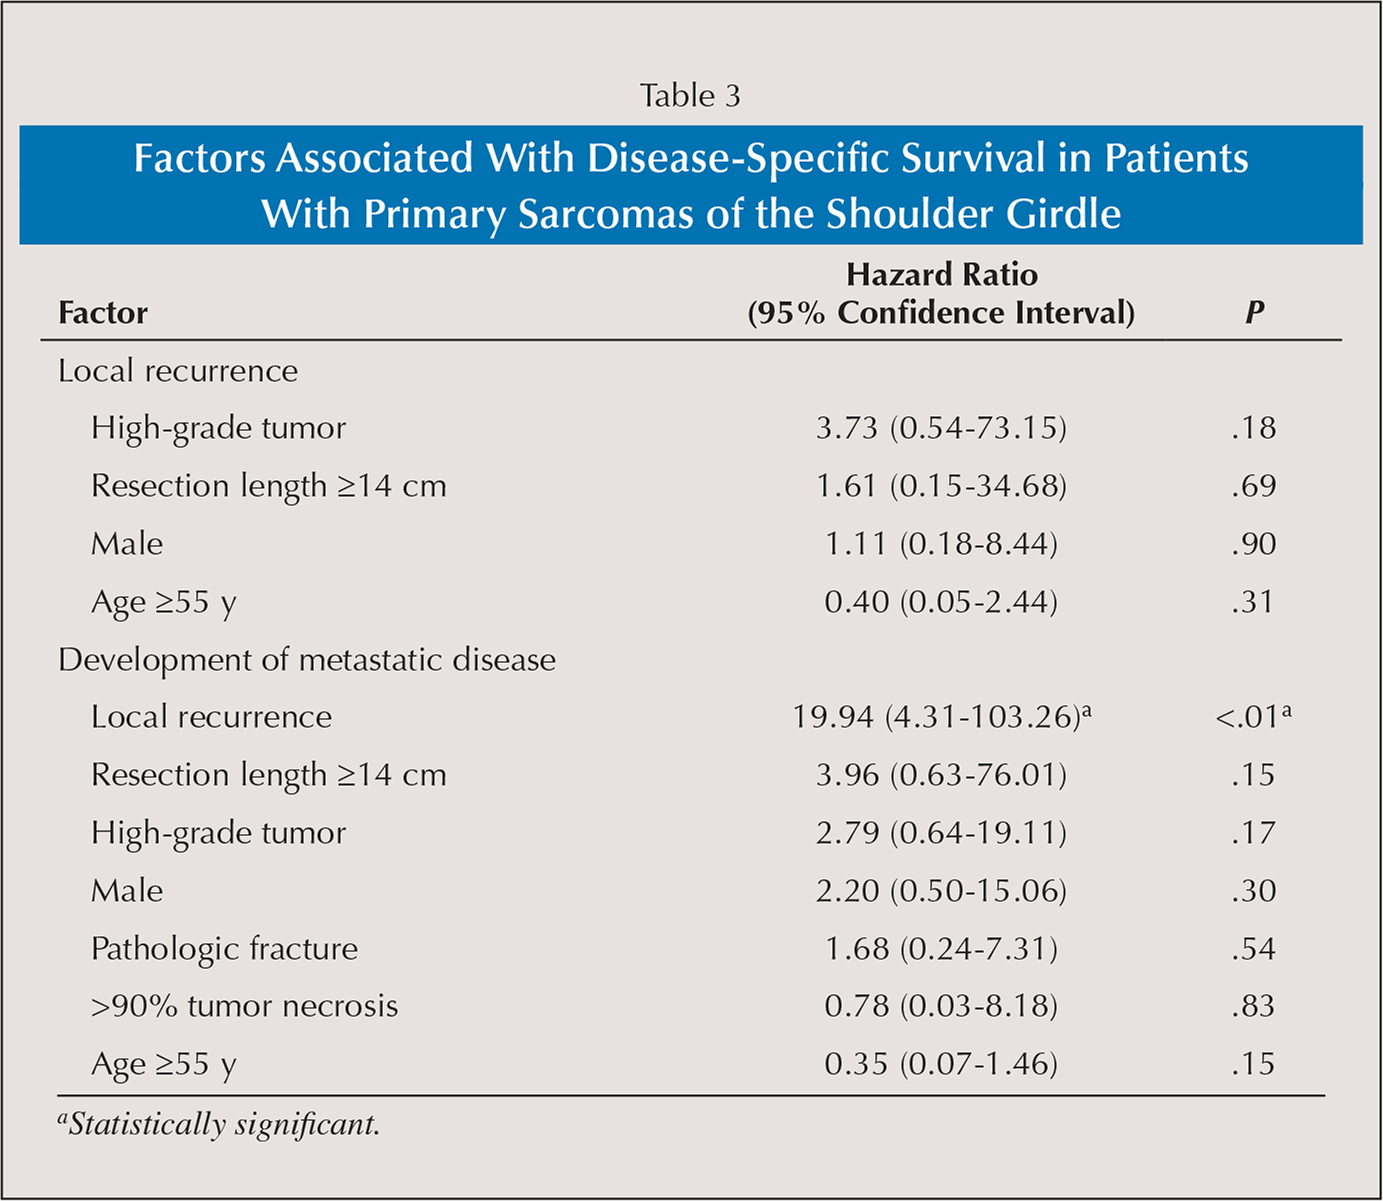 Factors Associated With Disease-Specific Survival in Patients With Primary Sarcomas of the Shoulder Girdle